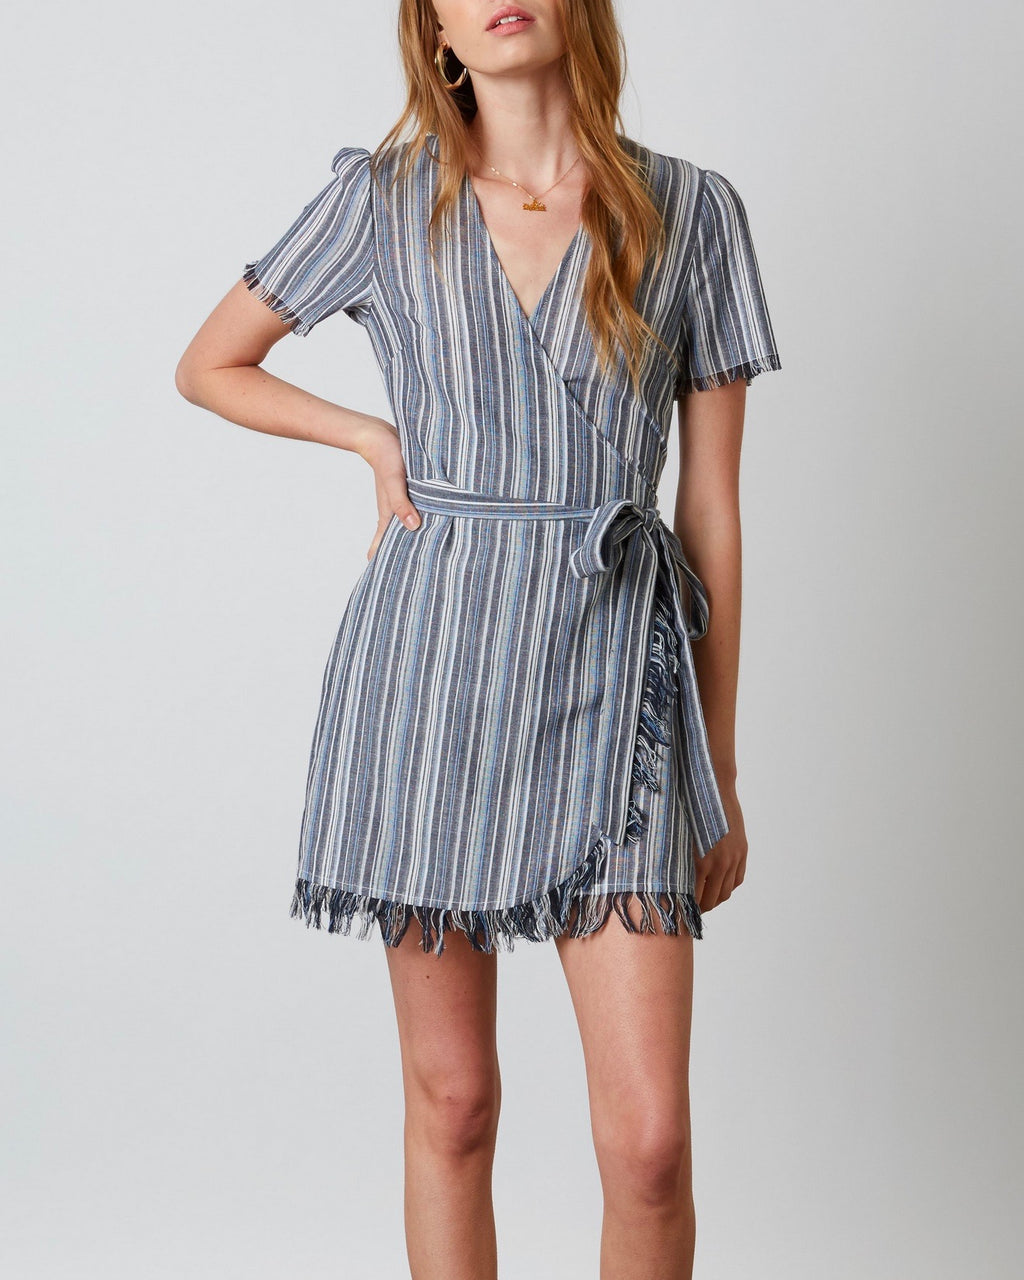 Cotton Candy LA - Hartwood Striped Wrap Mini Dress in Navy